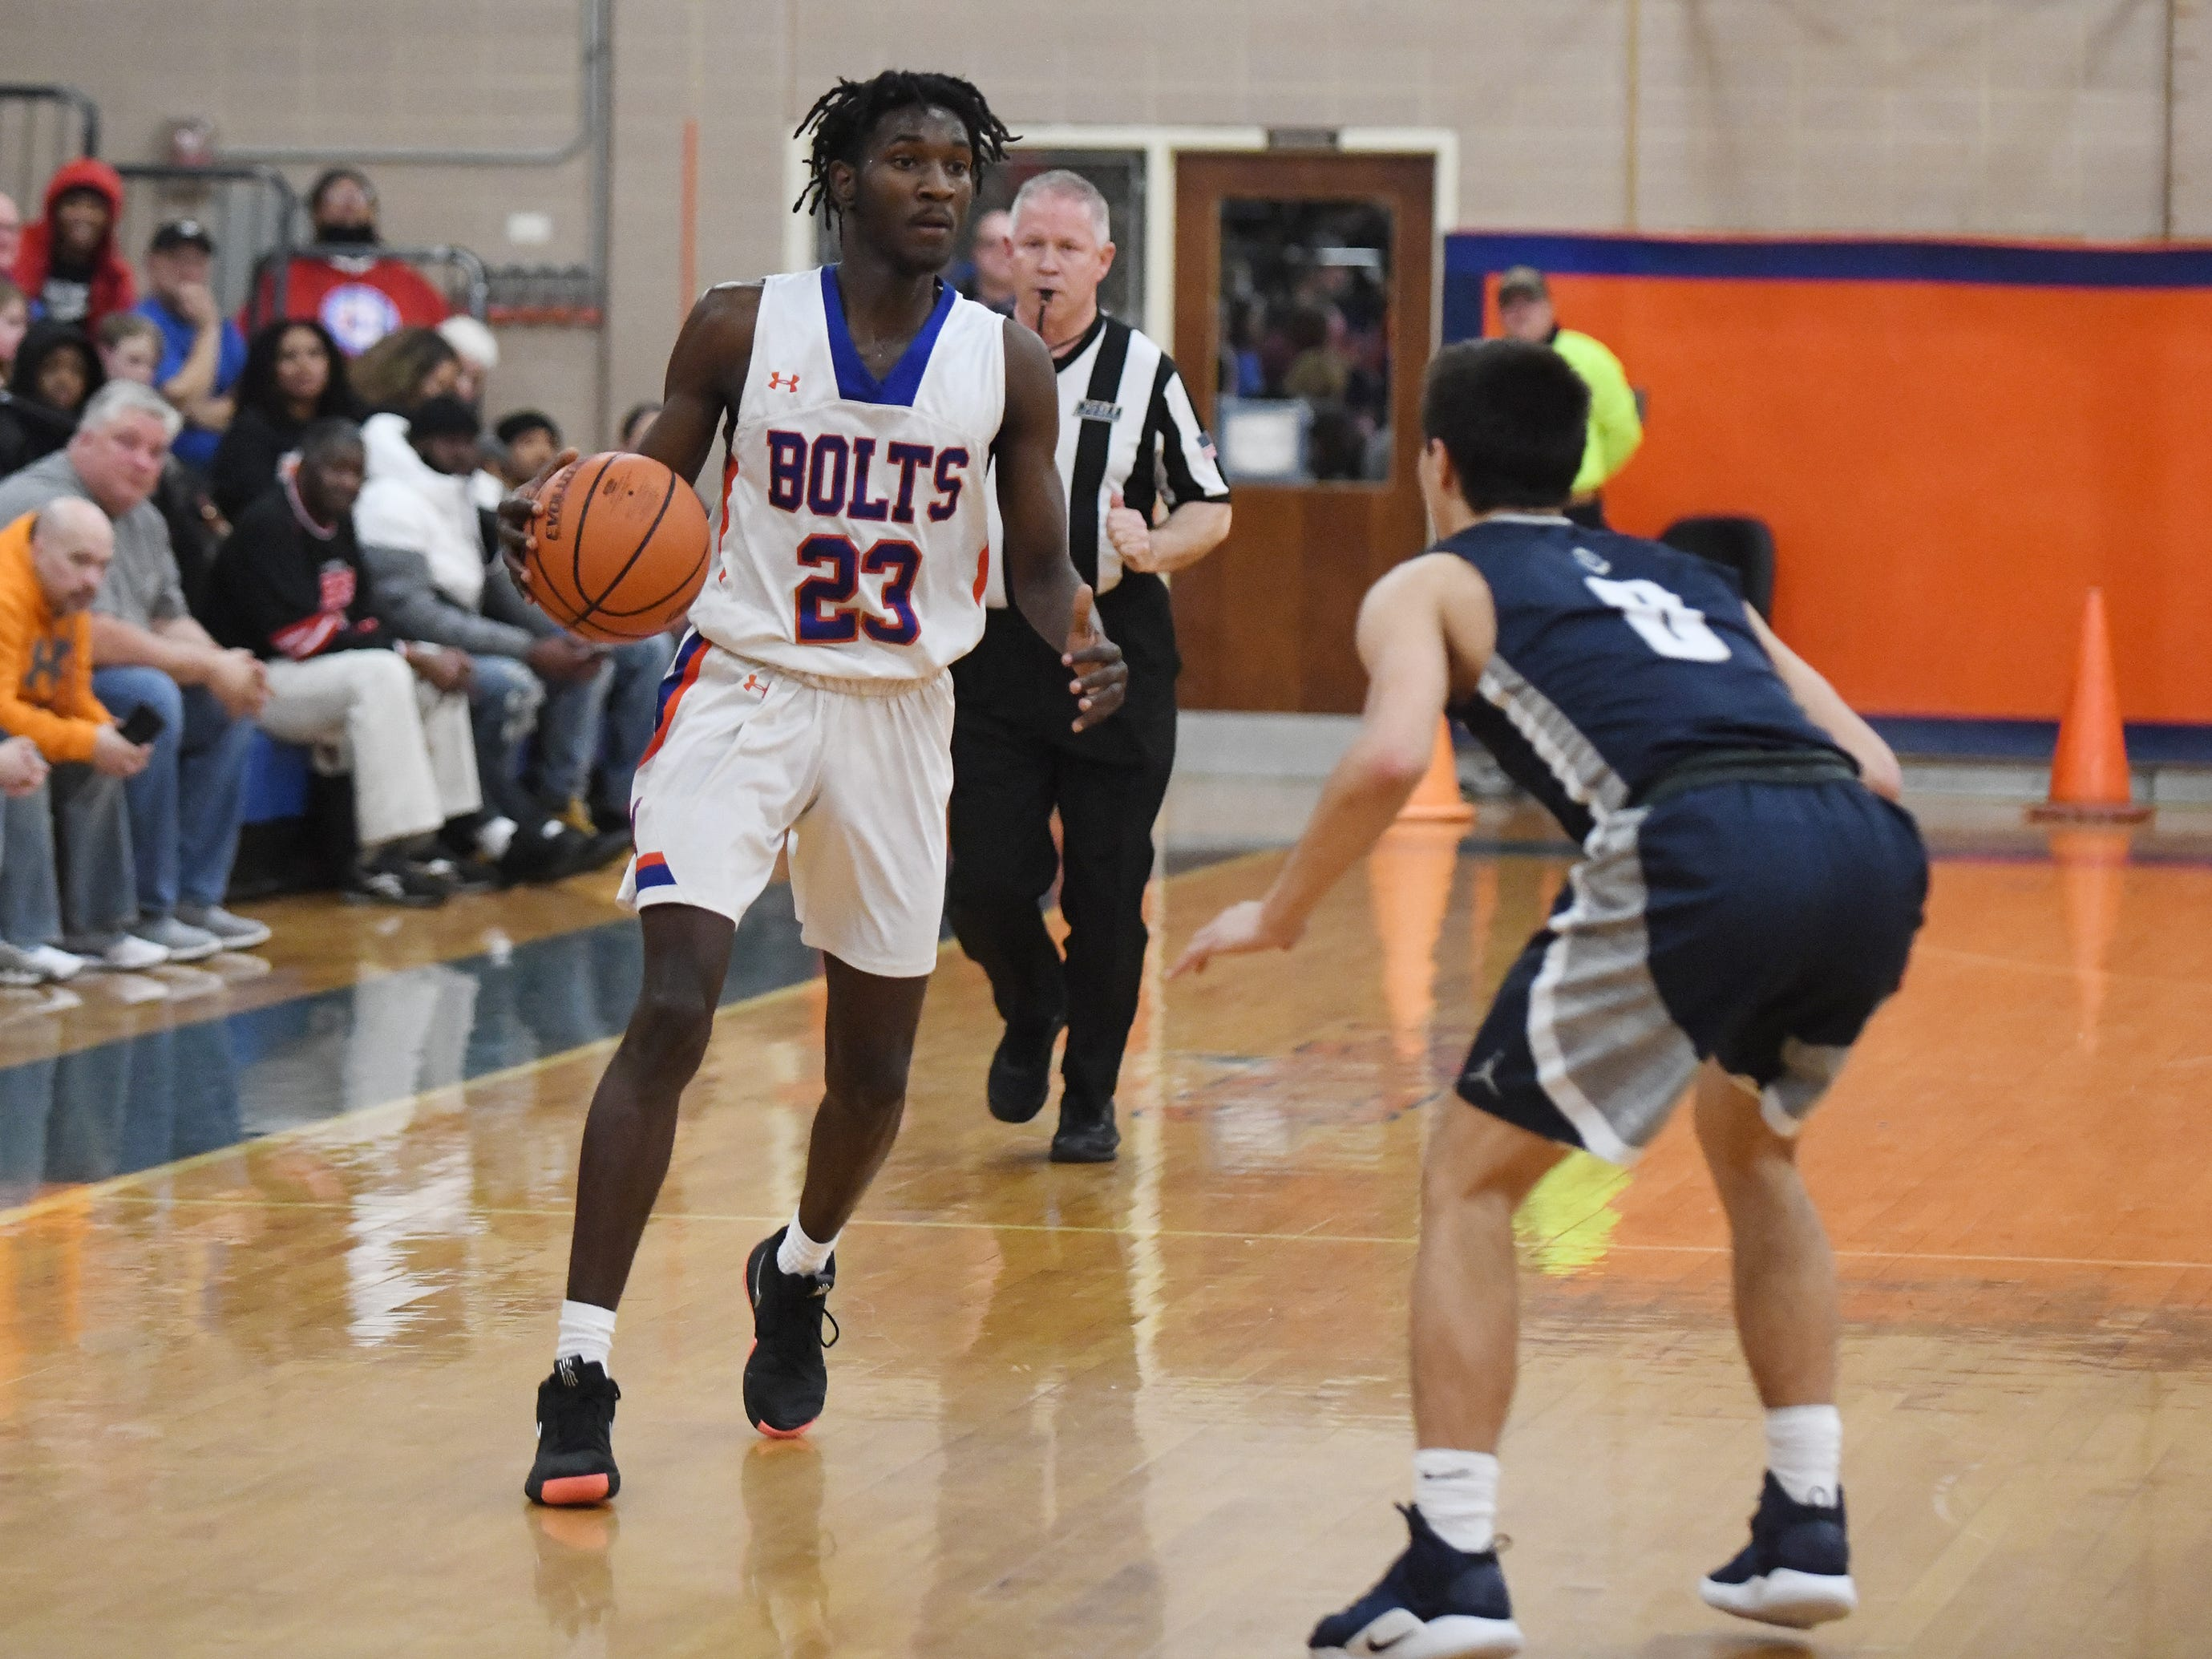 Millville's Rynell Lawrence looks to pass the ball during a game against St. Augustine. The Hermits topped the Thunderbolts 66-53 on Friday, Jan. 18, 2019.